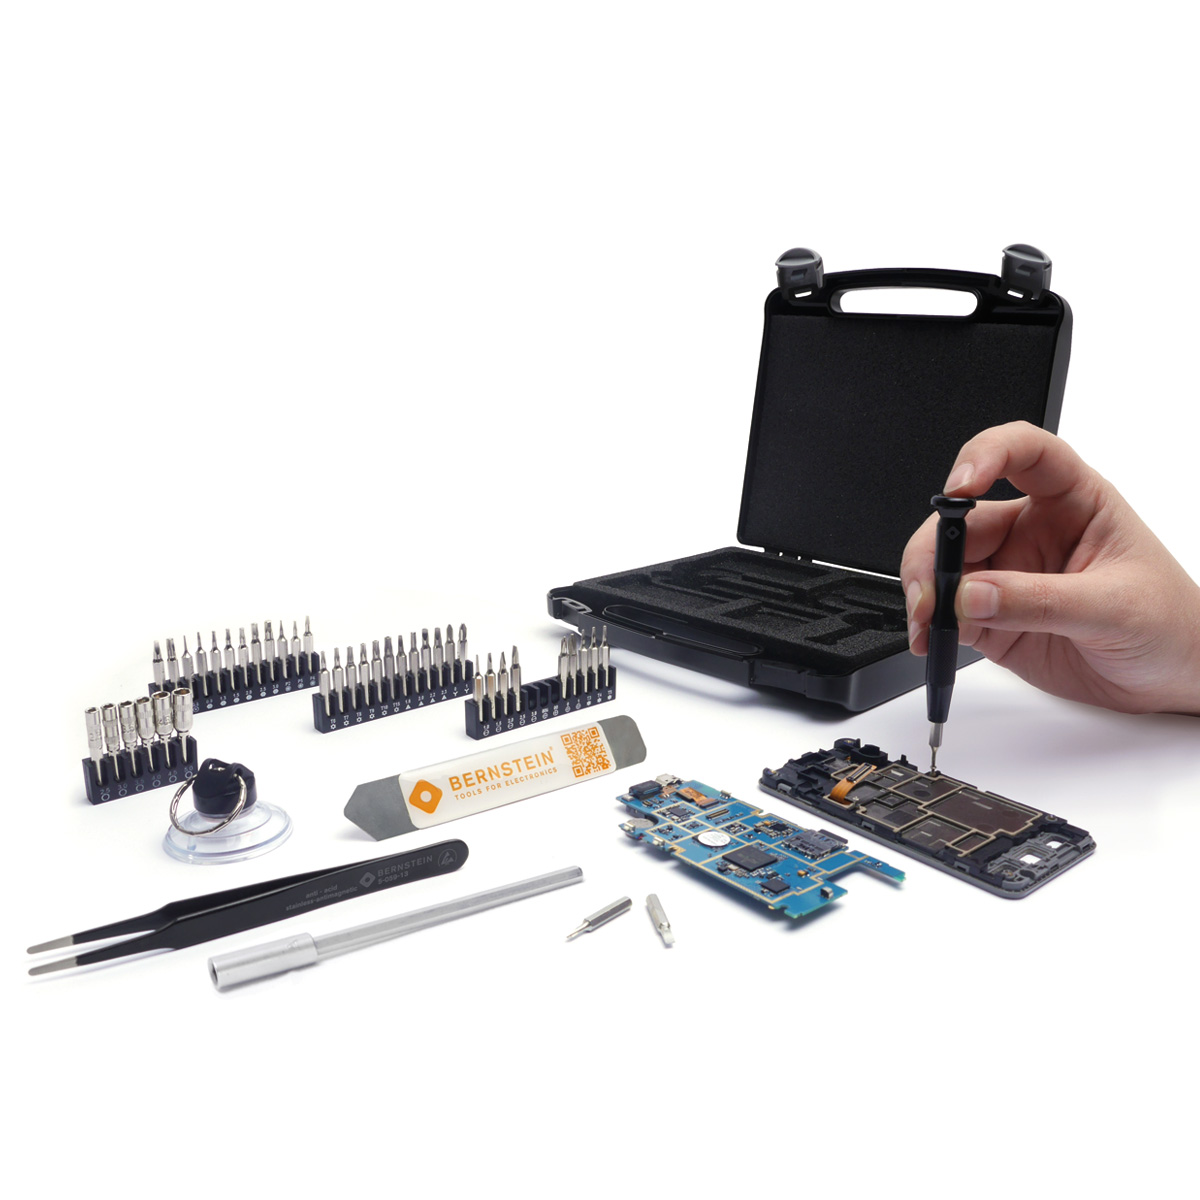 Bernstein 47-piece precision repair kit APPLE SAMSUNG HUAWEI